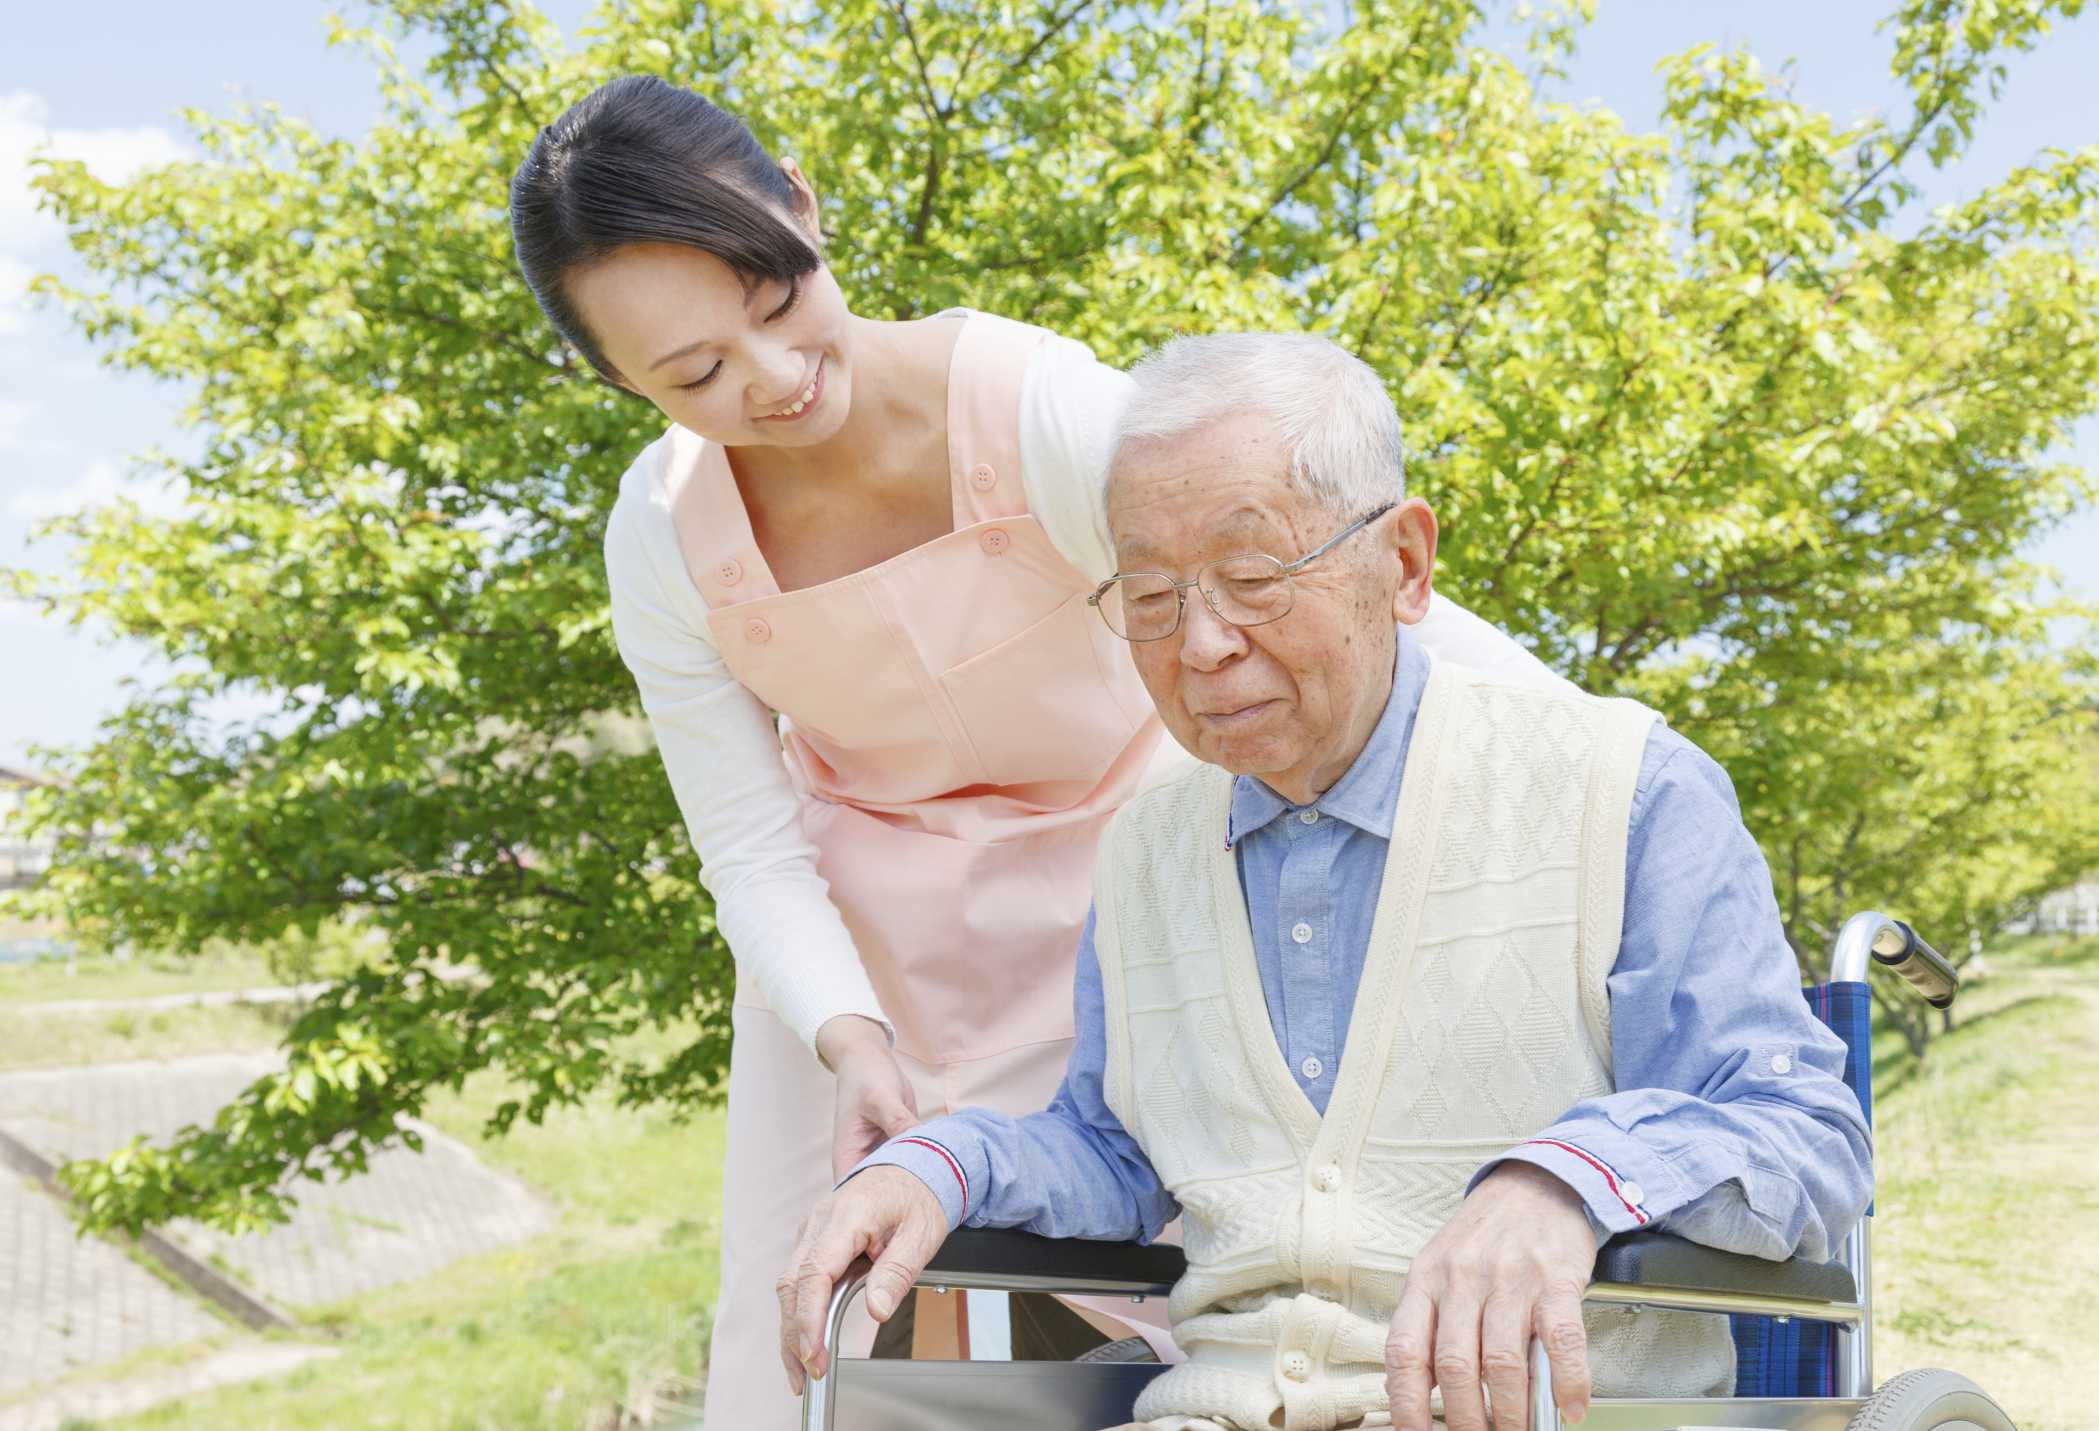 How to Work Together to Care for a Loved One